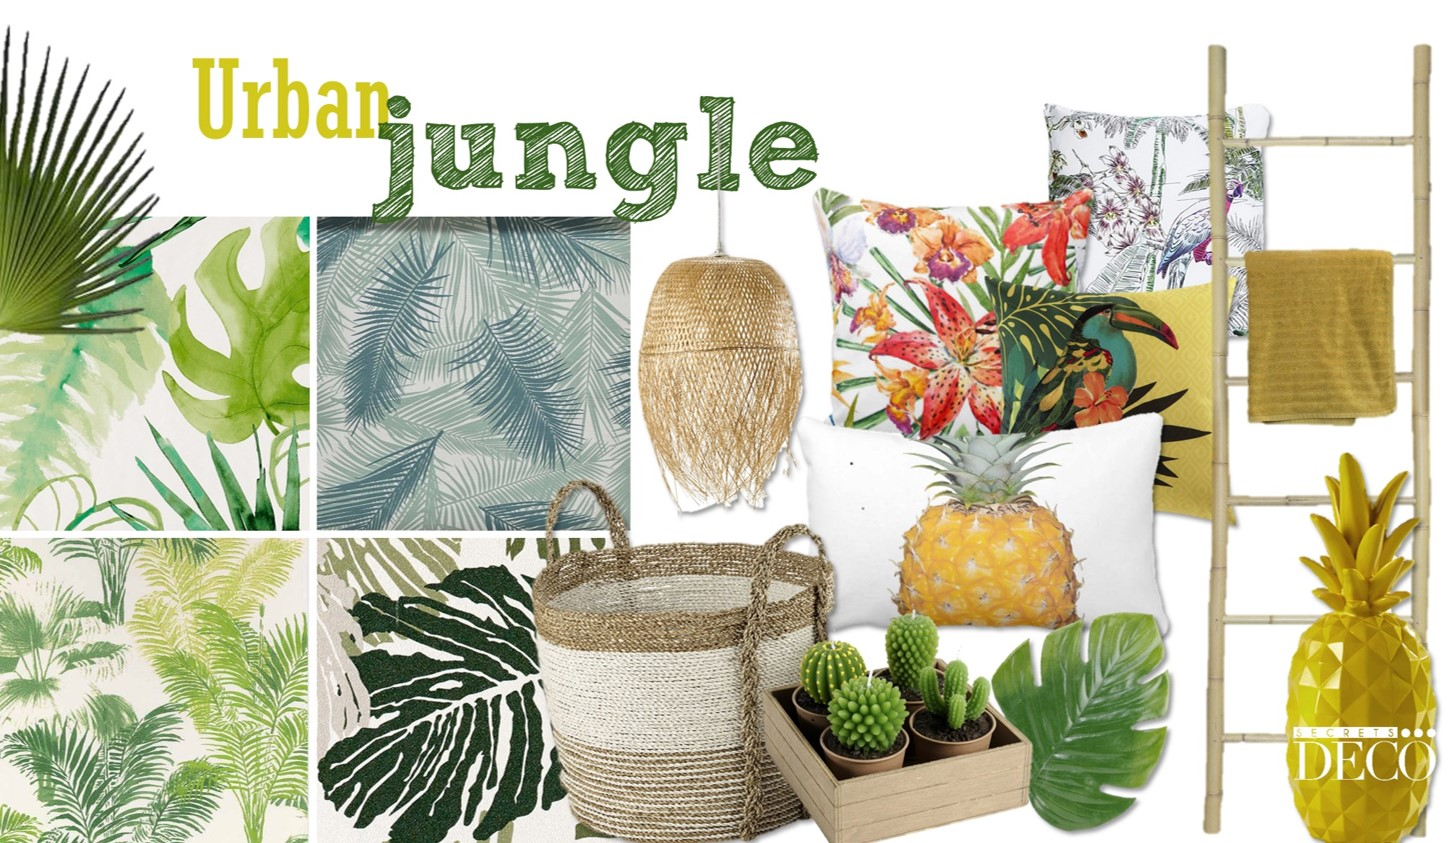 Urban jungle la d coration l 39 esprit tropical for Deco tendance